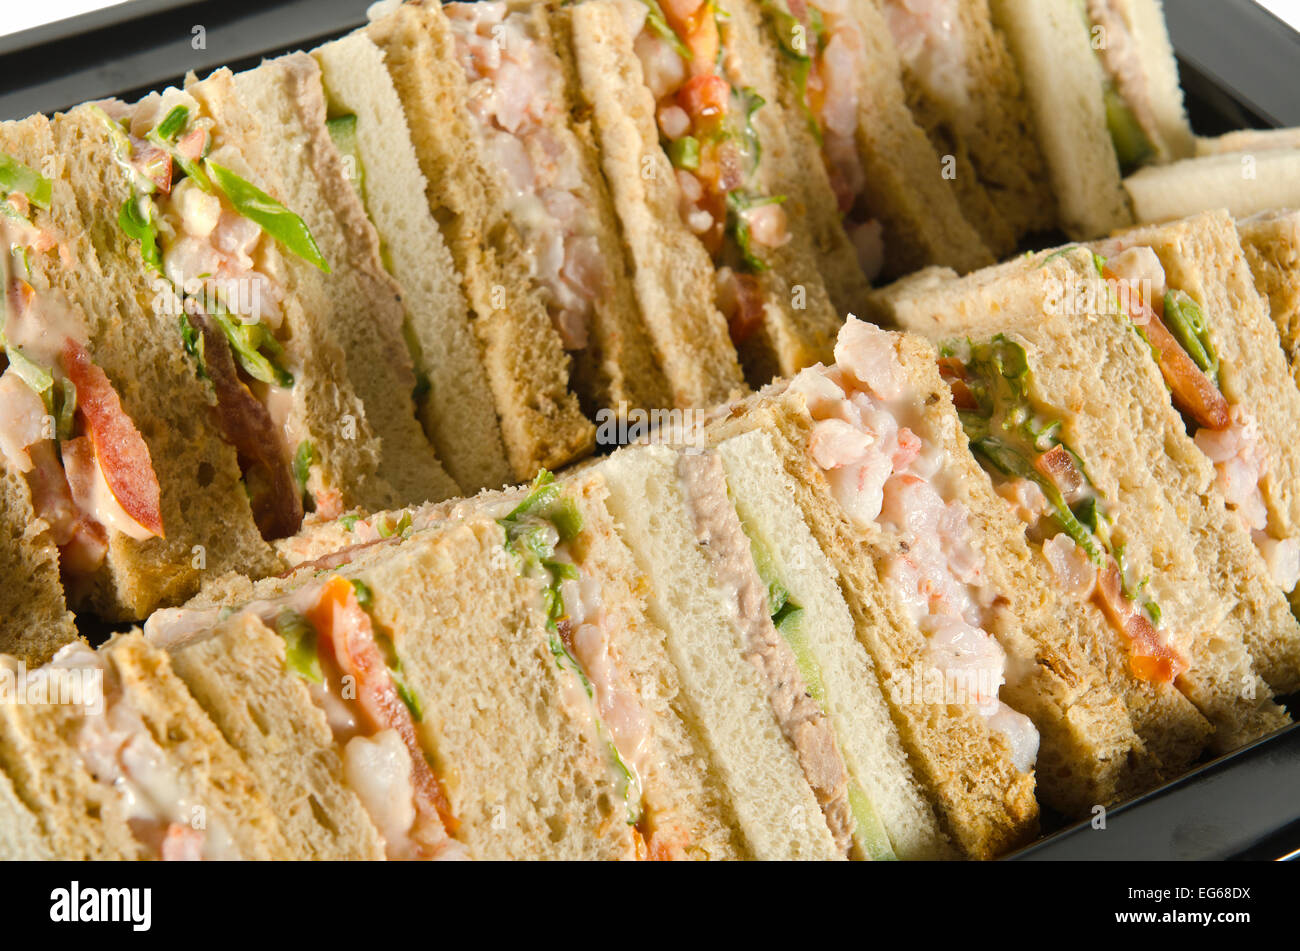 A Plate Of Party Food Wraps Rolls And Sandwiches Stock Photo